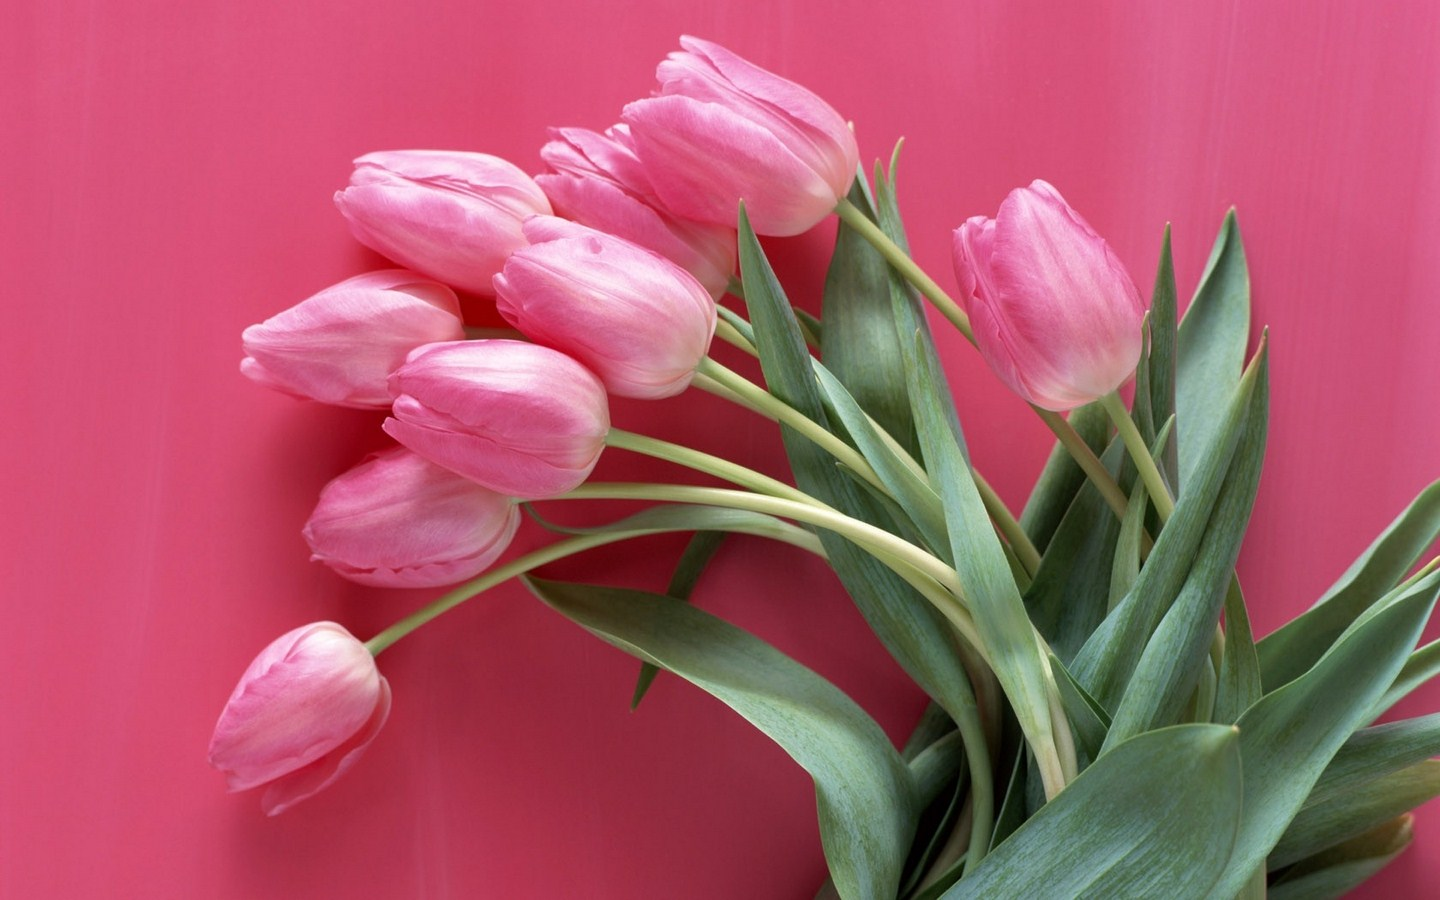 Tulips Pink Flowers Wallpaper 1440x900 1440 X 900